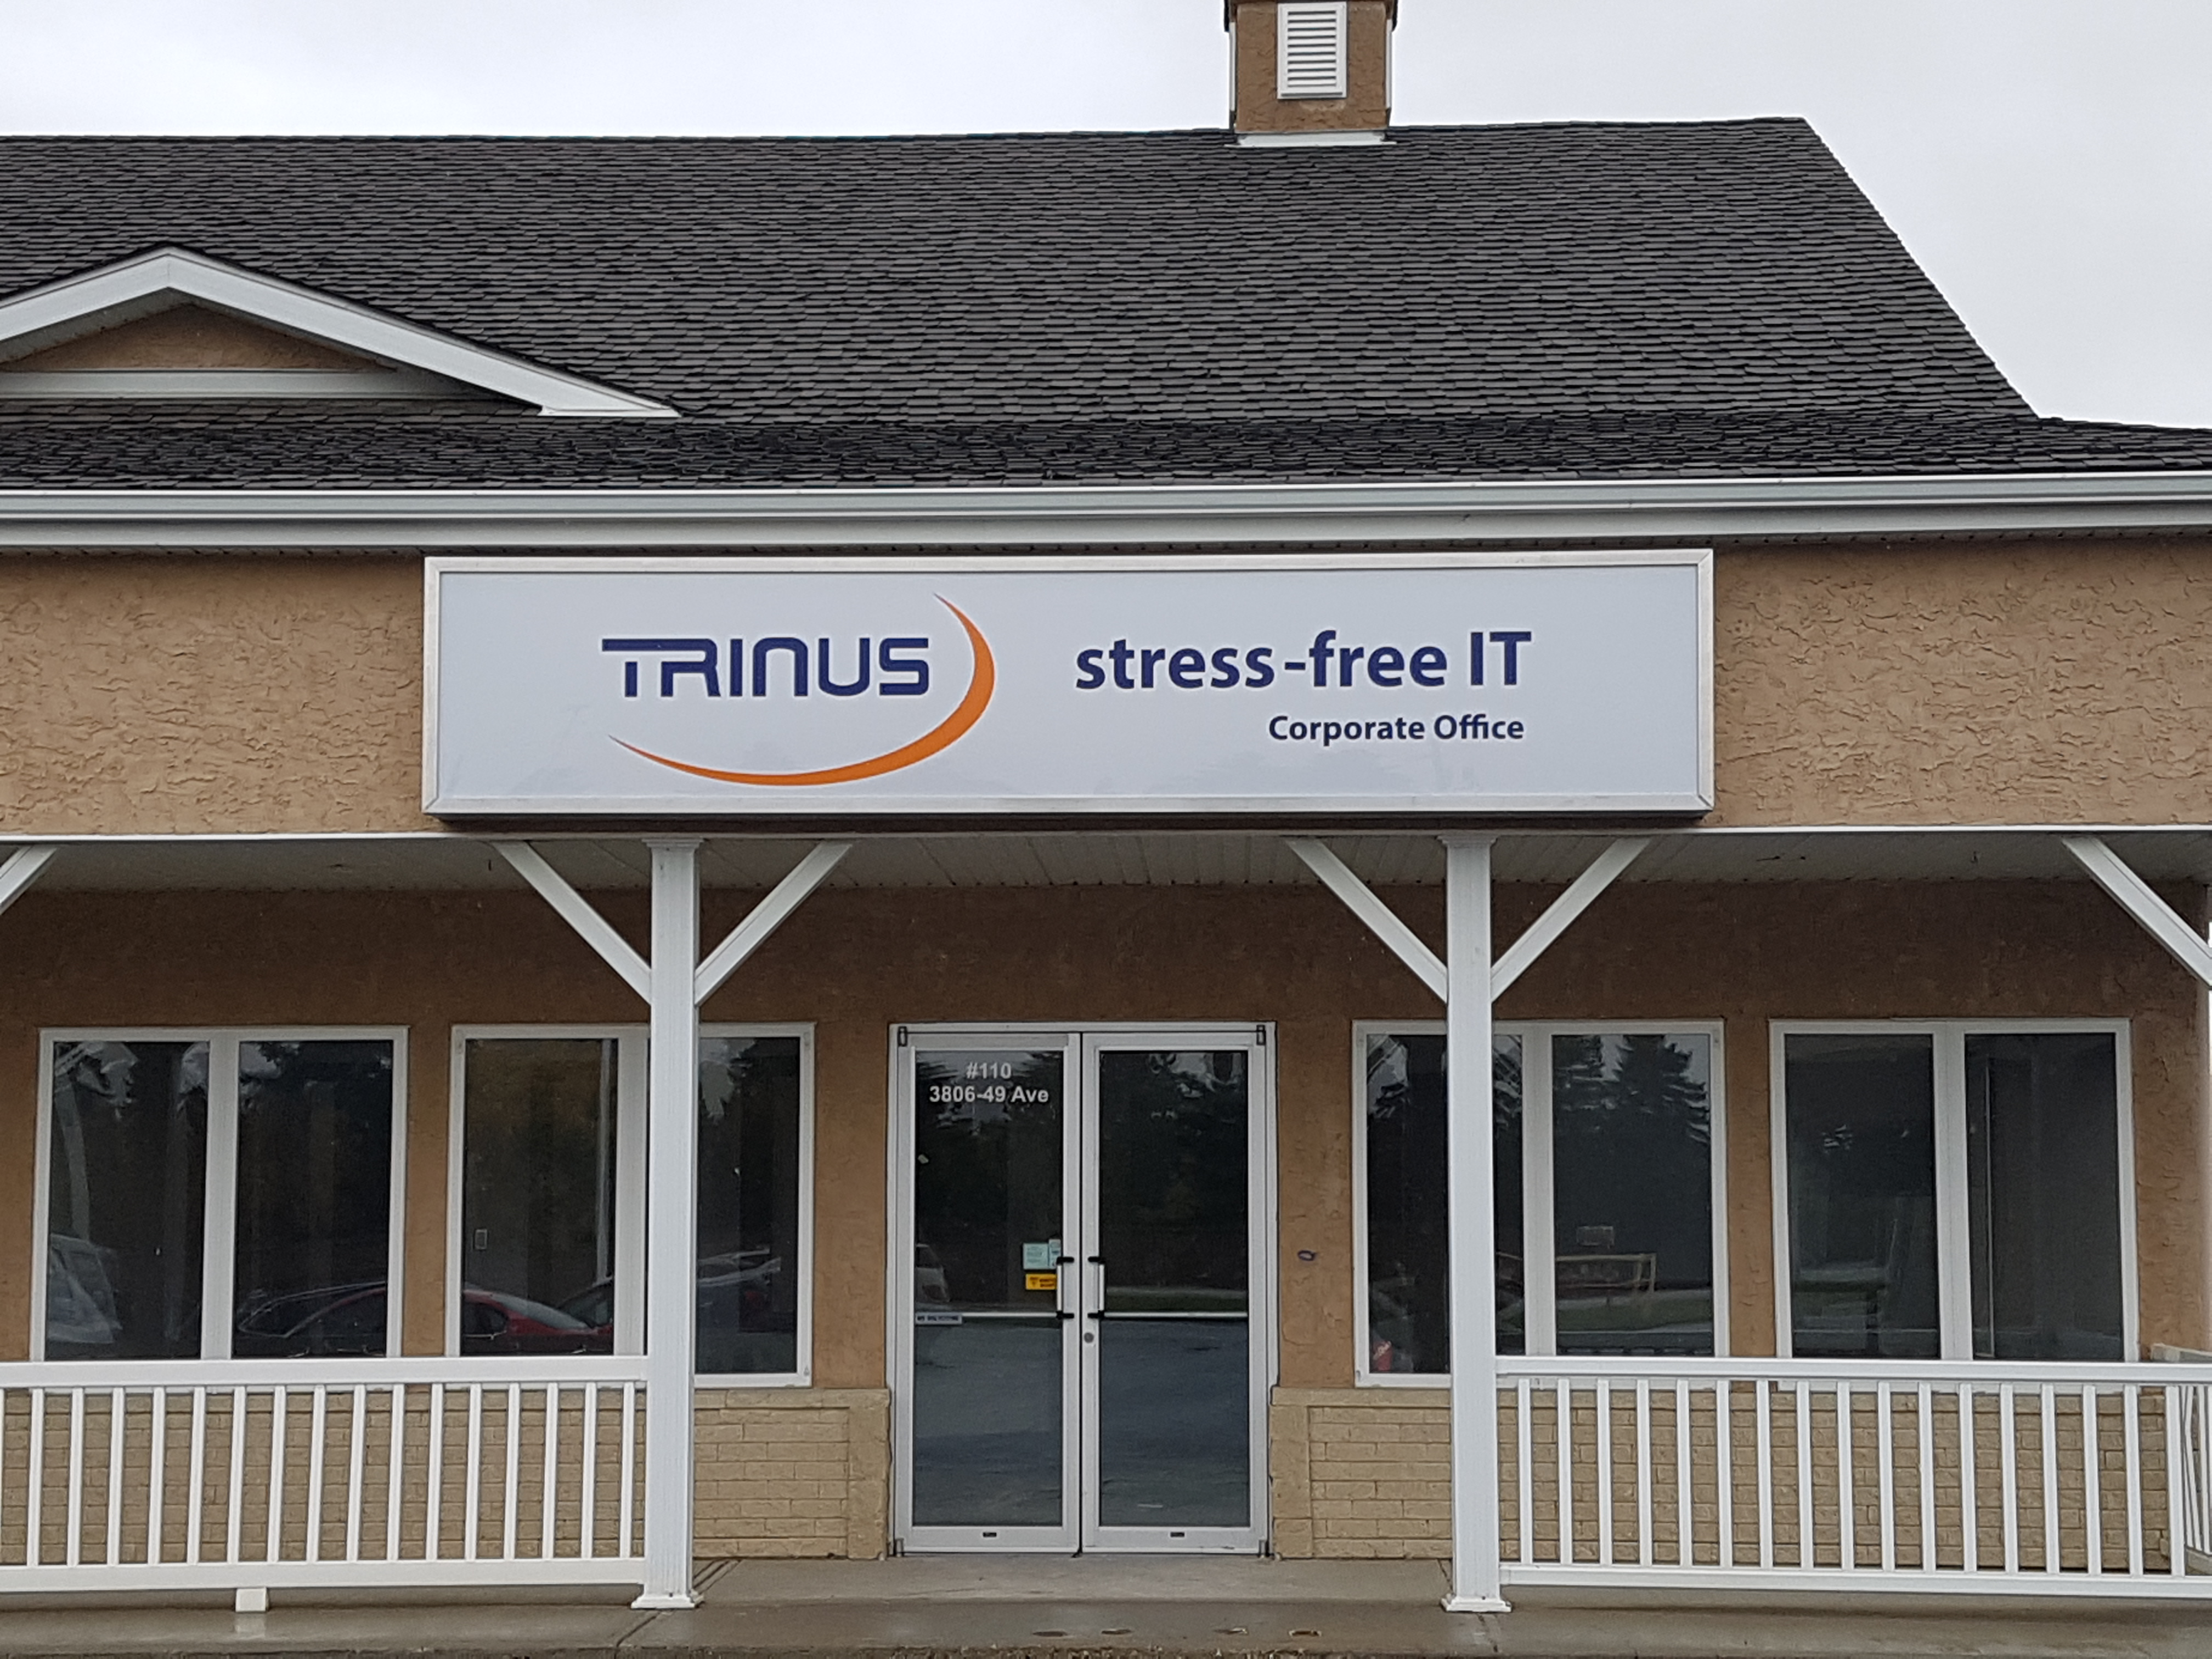 TRINUS Takes Care of All Your IT Management Needs